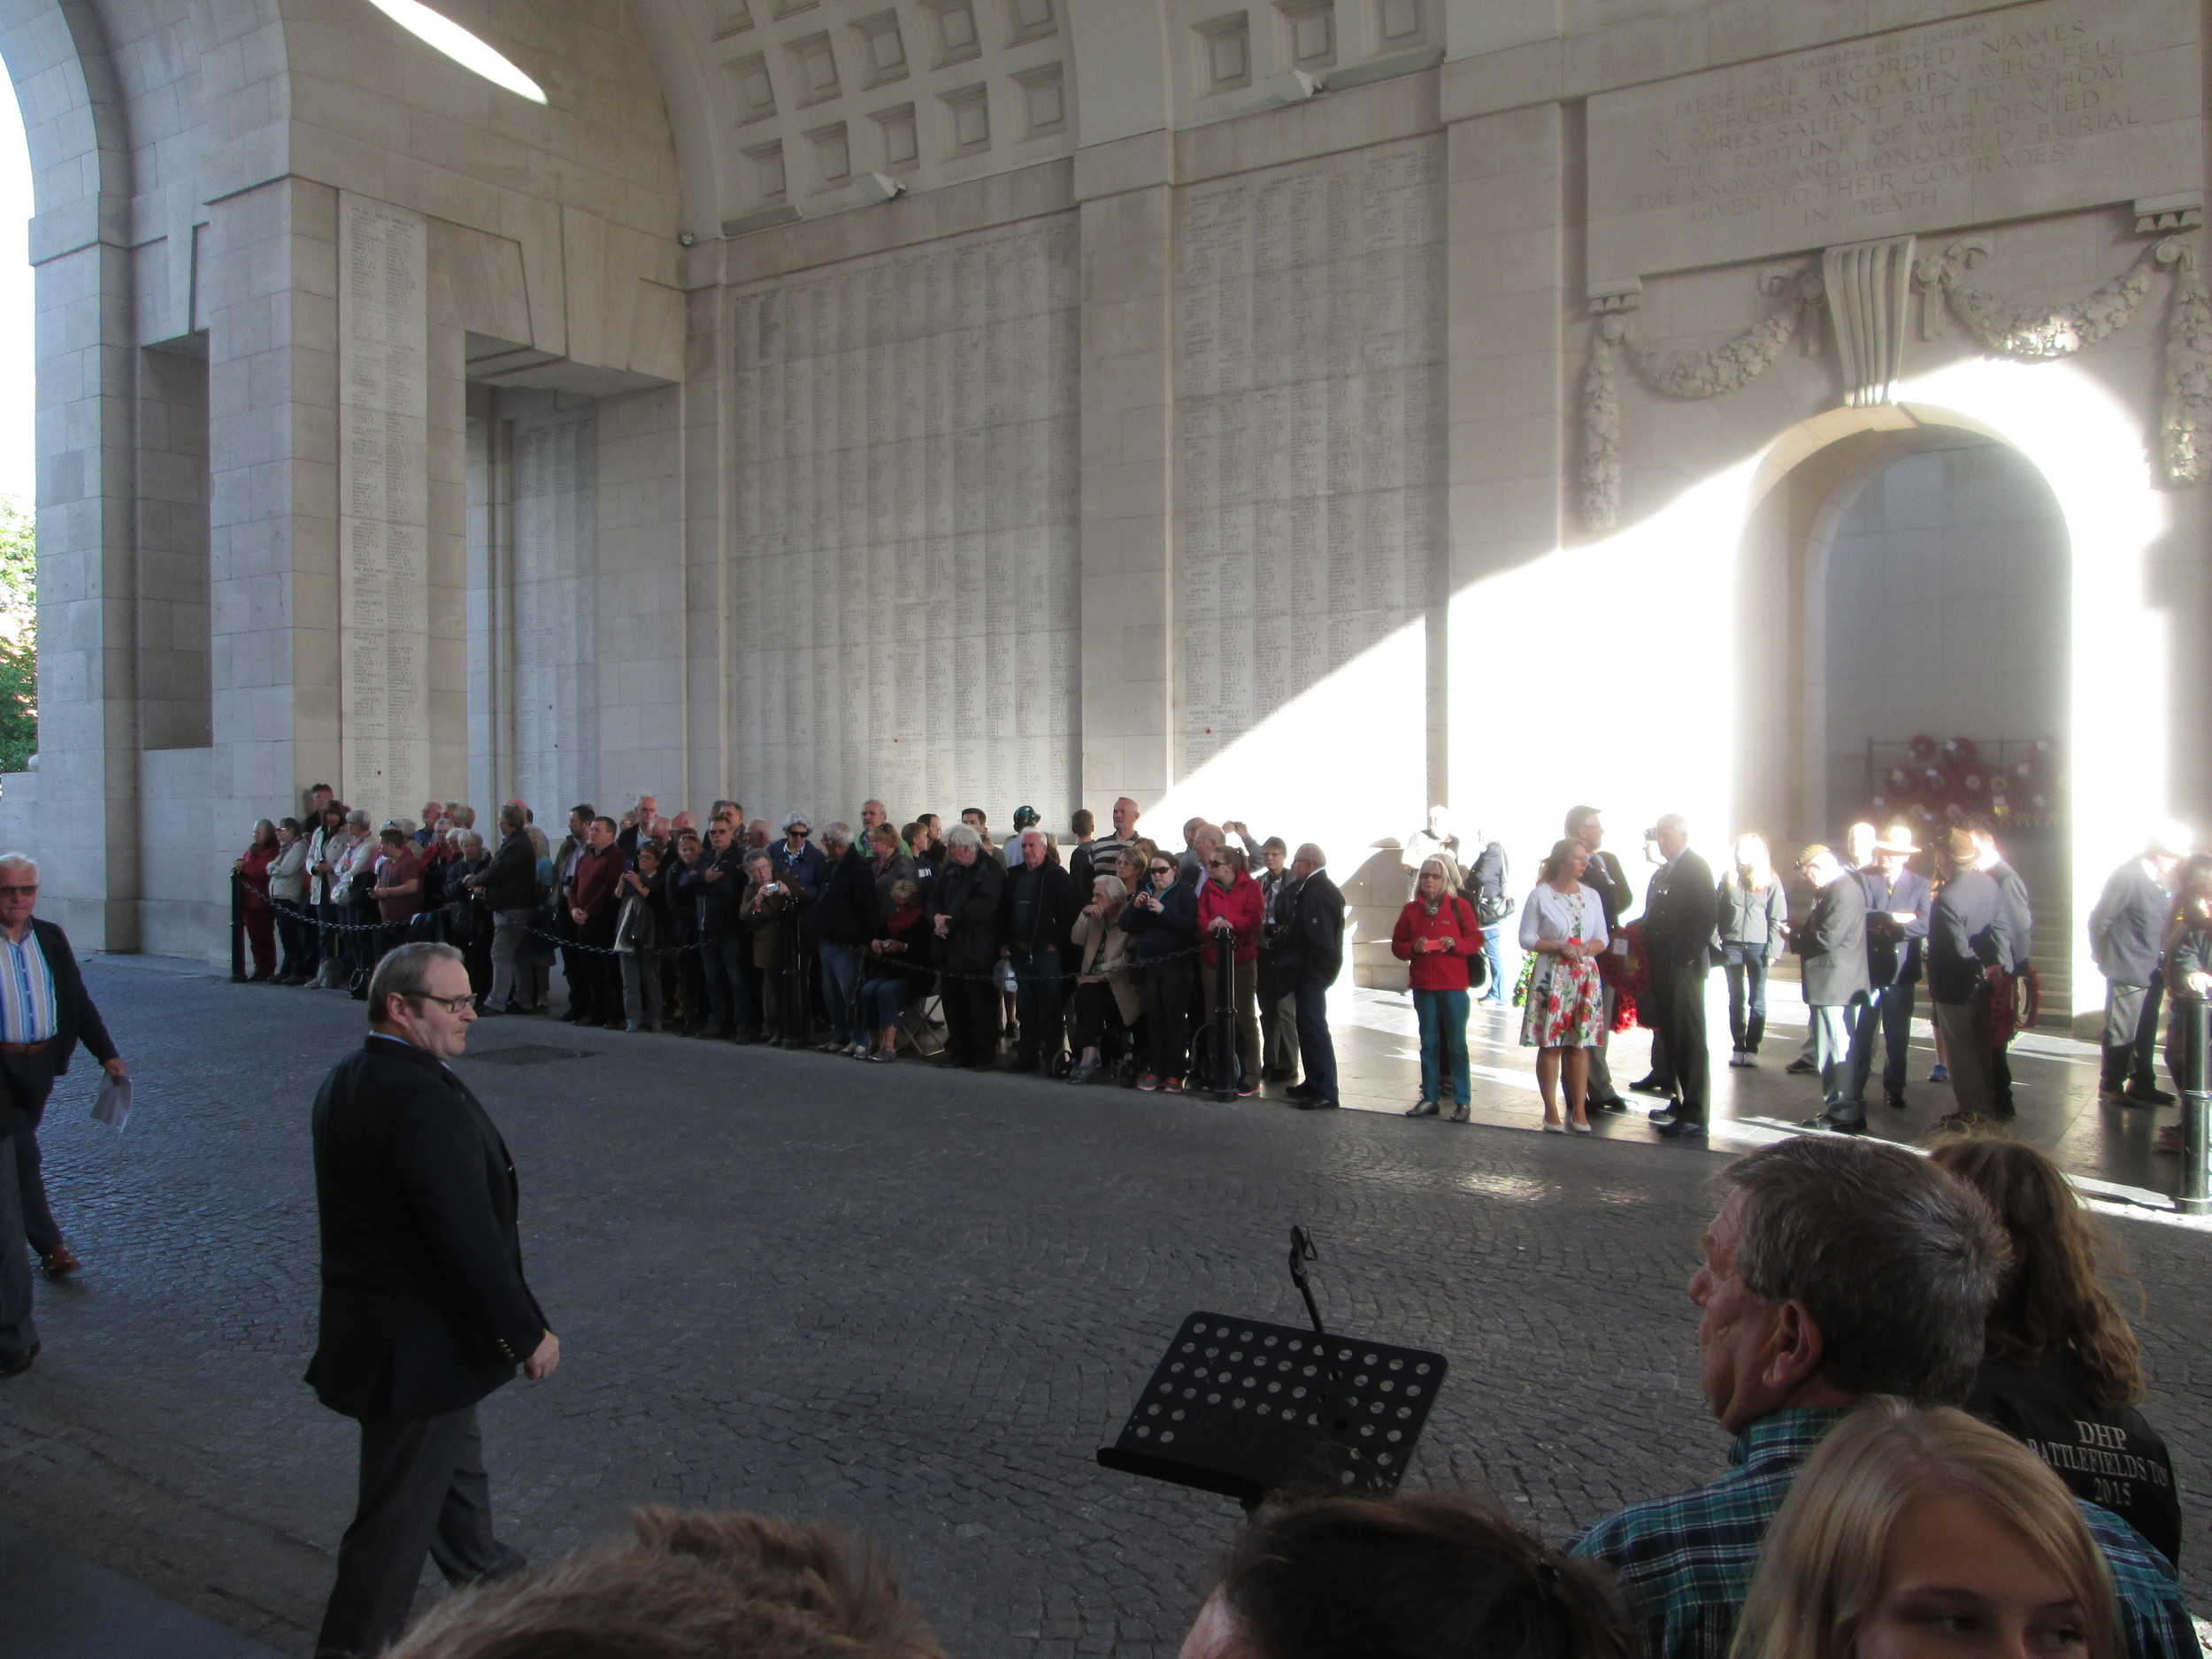 The Menin Gate Ceremony in Ypres. This monument commemorates the fallen soldiers of the Ypres Salient whose remains have not been found or identified.